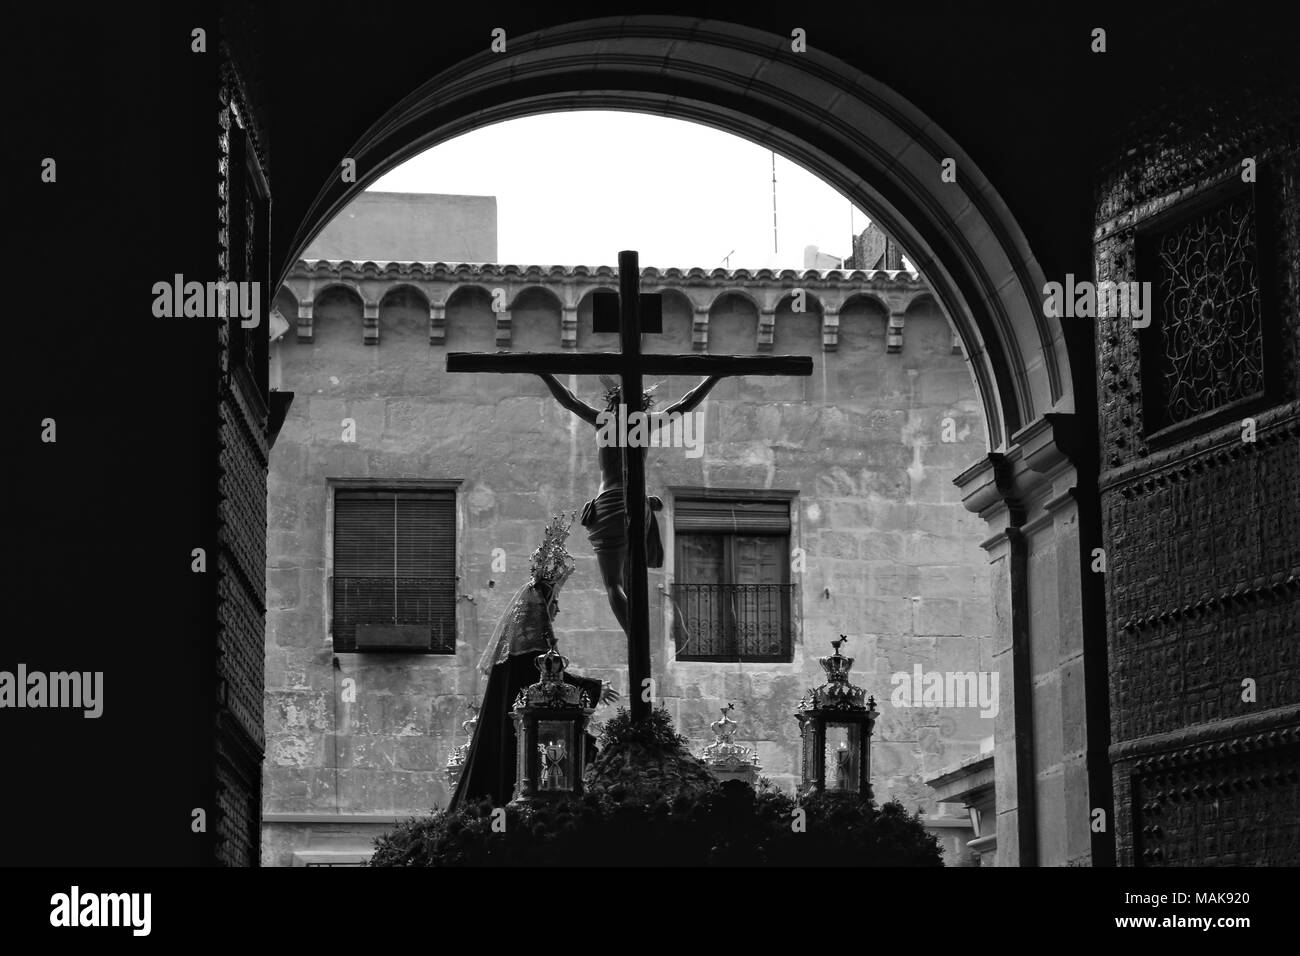 Elche, Spain- March 27, 2018: Christ in procession of Holy Week in Elche in the afternoon. Old facade and doors of church open. Monochrome picture - Stock Image